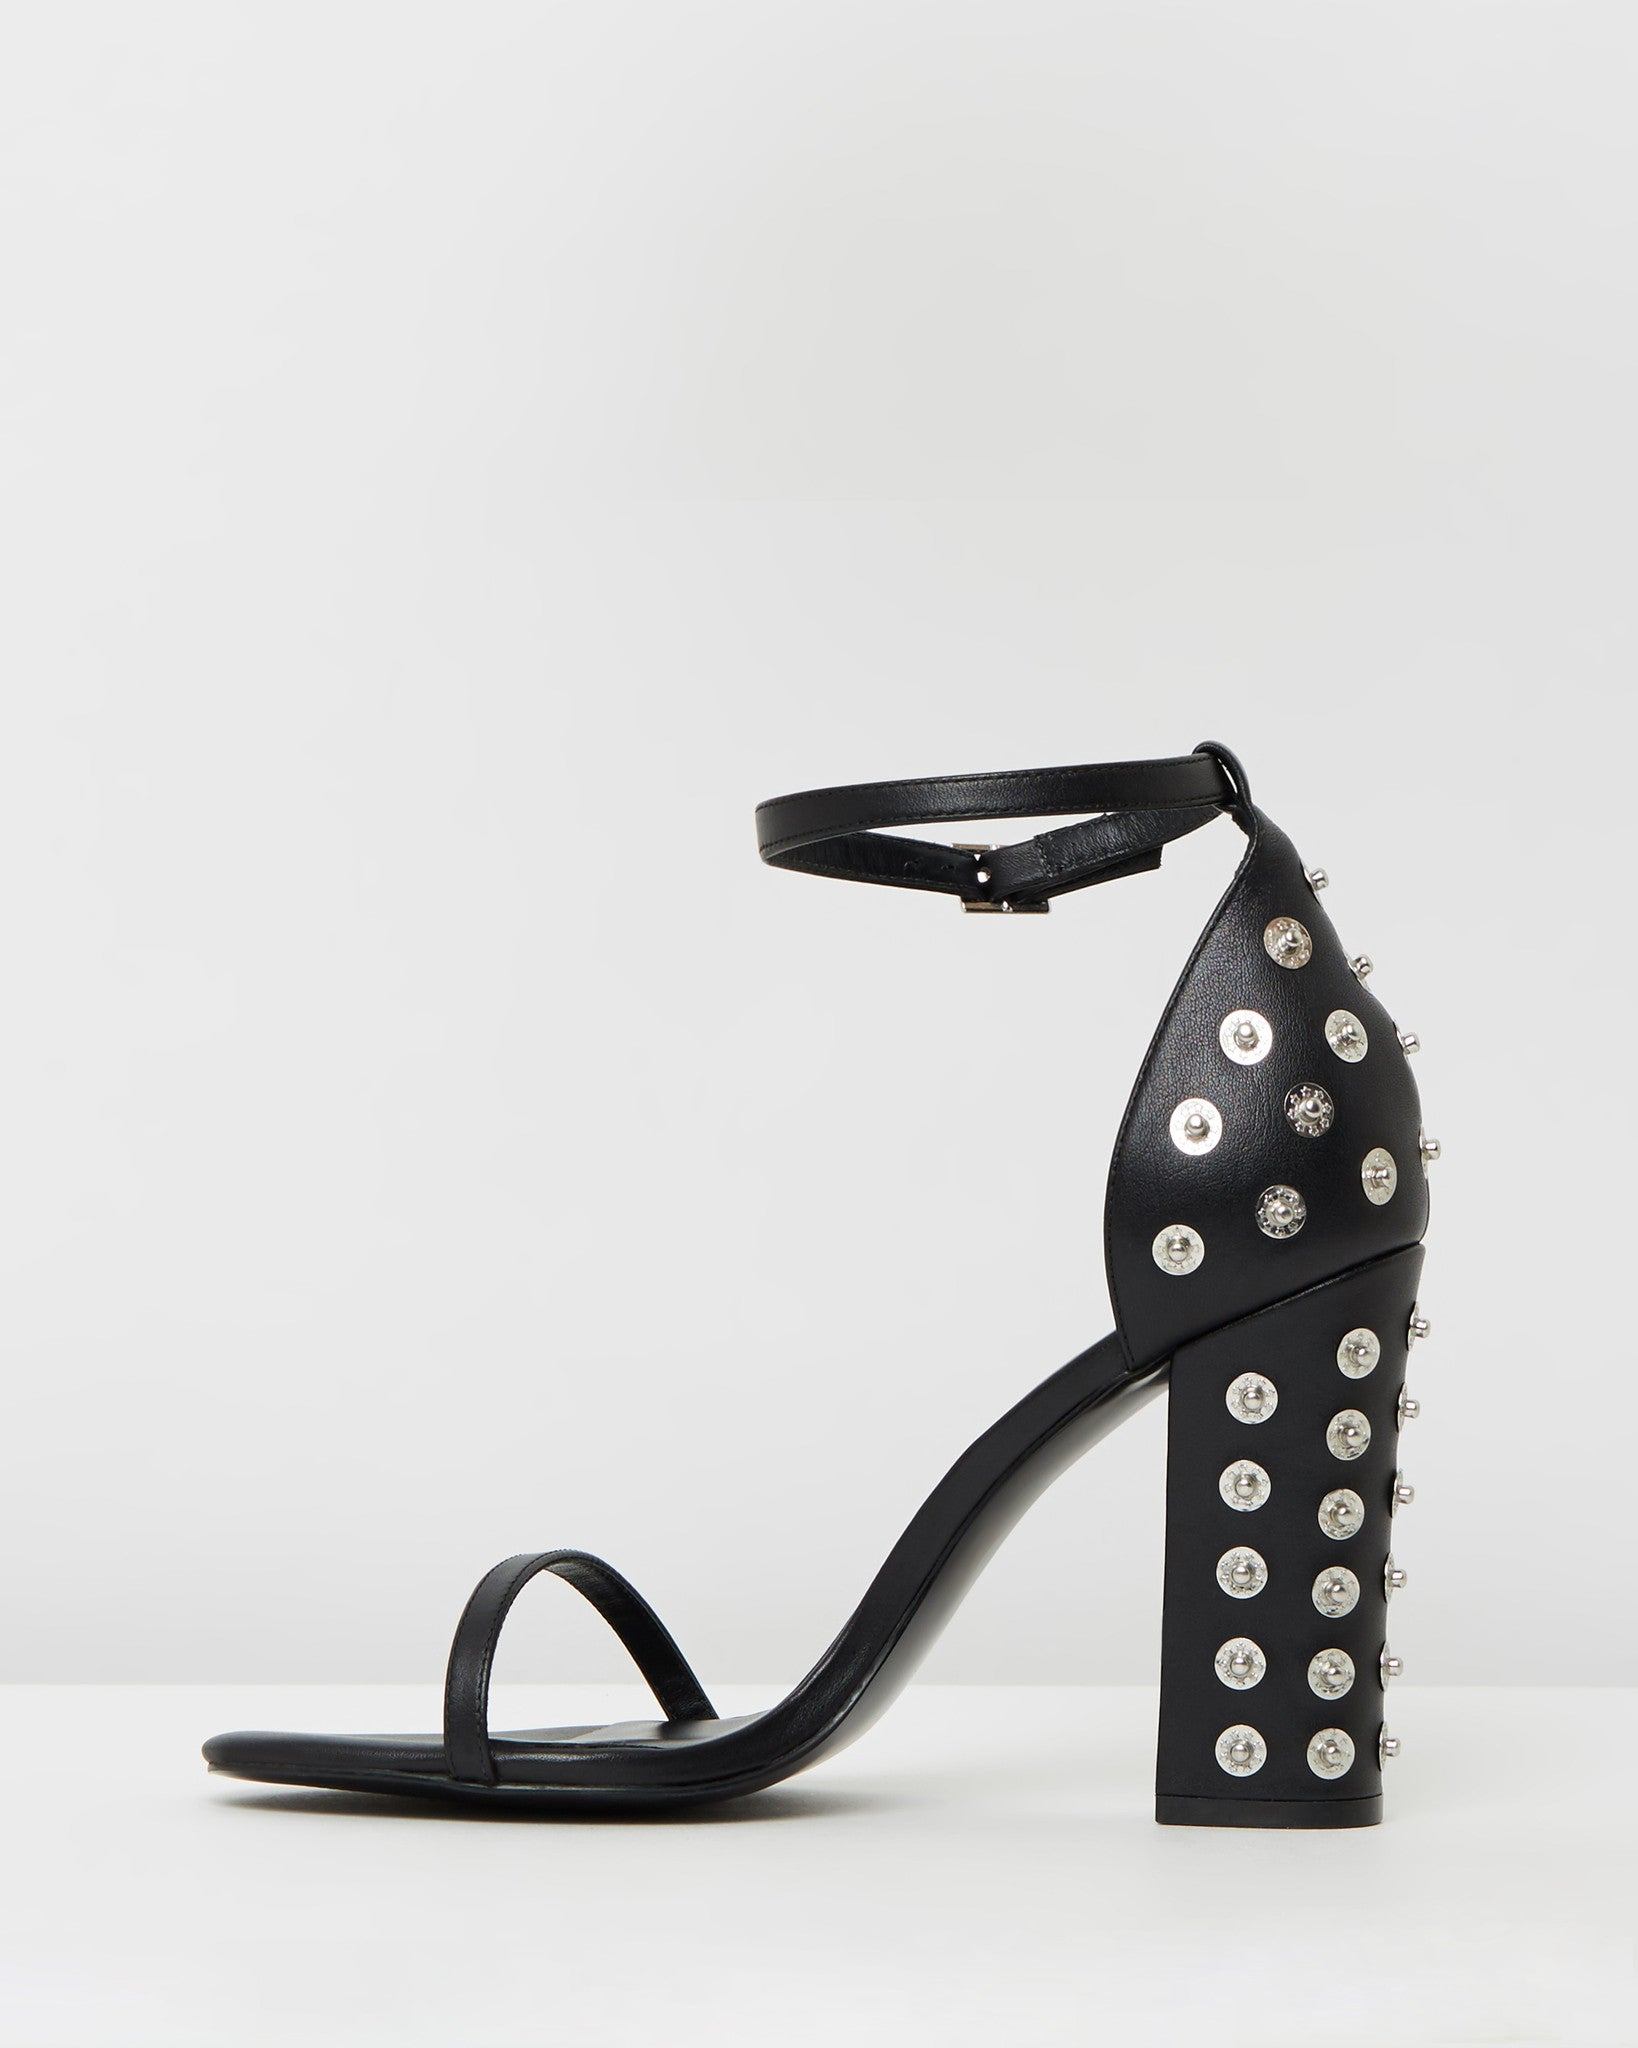 THE MODE COLLECTIVE Studded Block Heel